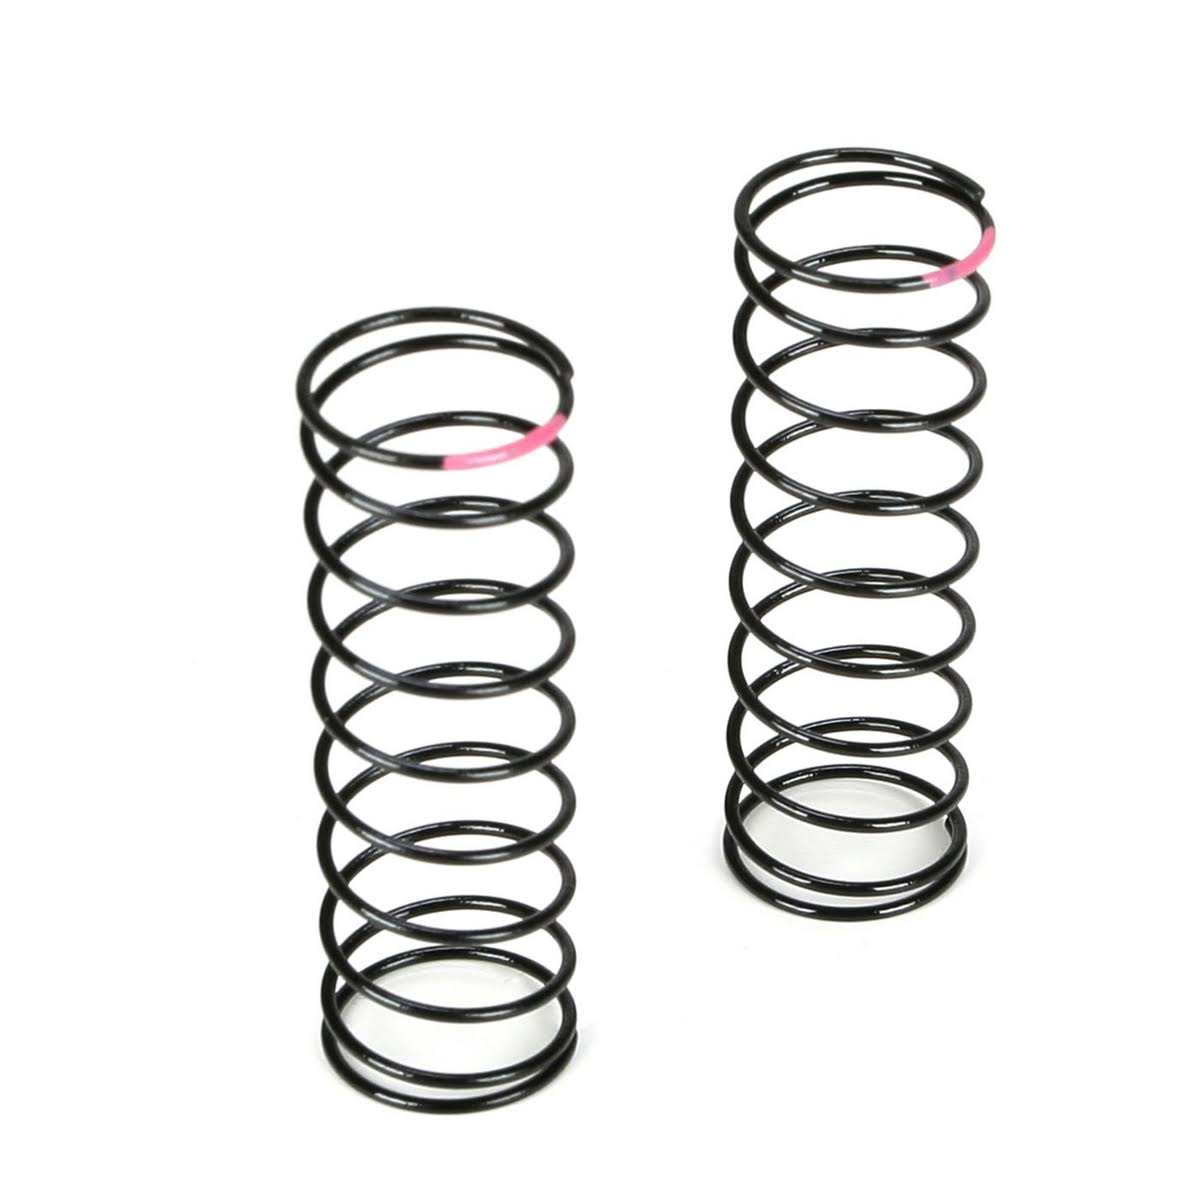 Team Losi TLR5178 Racing Front Shock Spring - 2.3 Rate, Pink, 22t